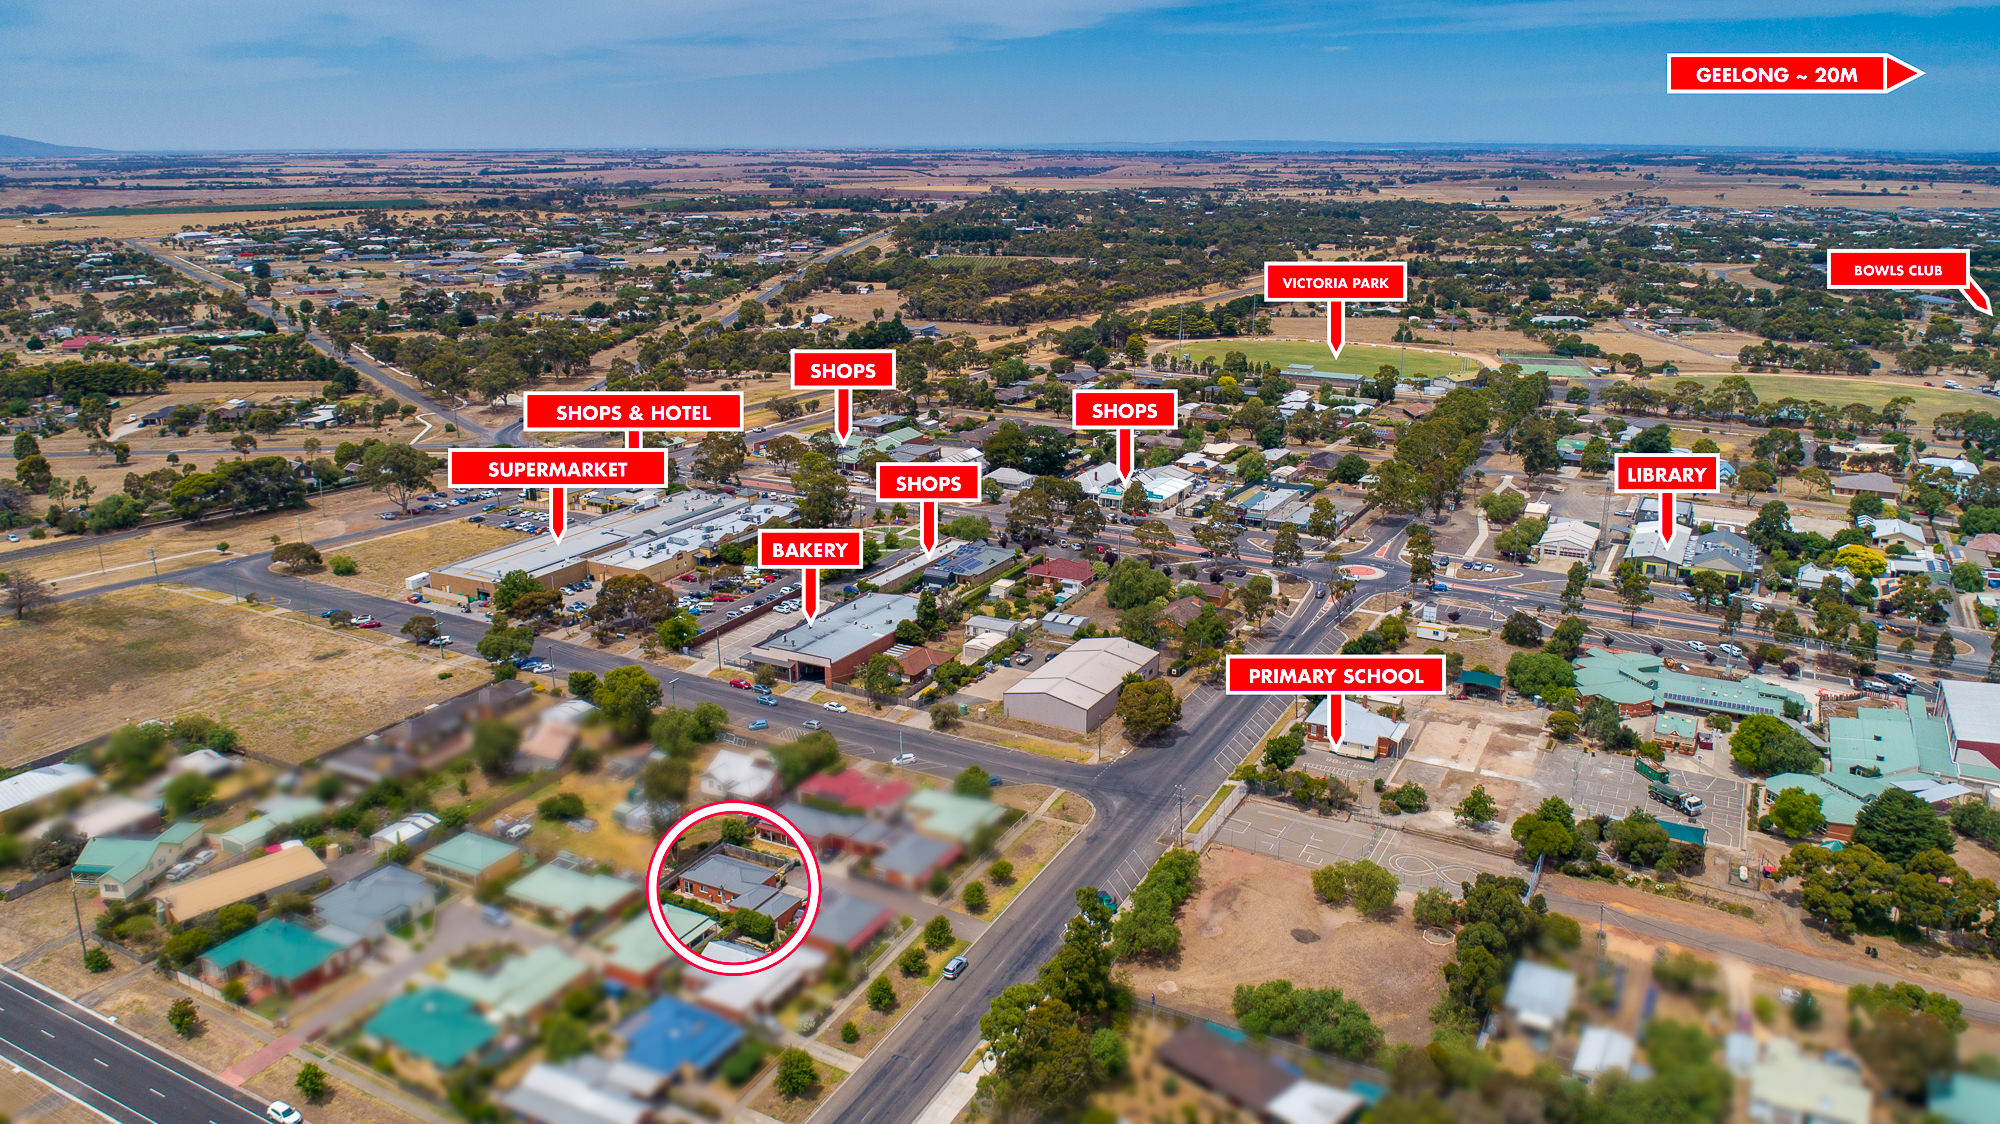 Geelong Rural aerial photography